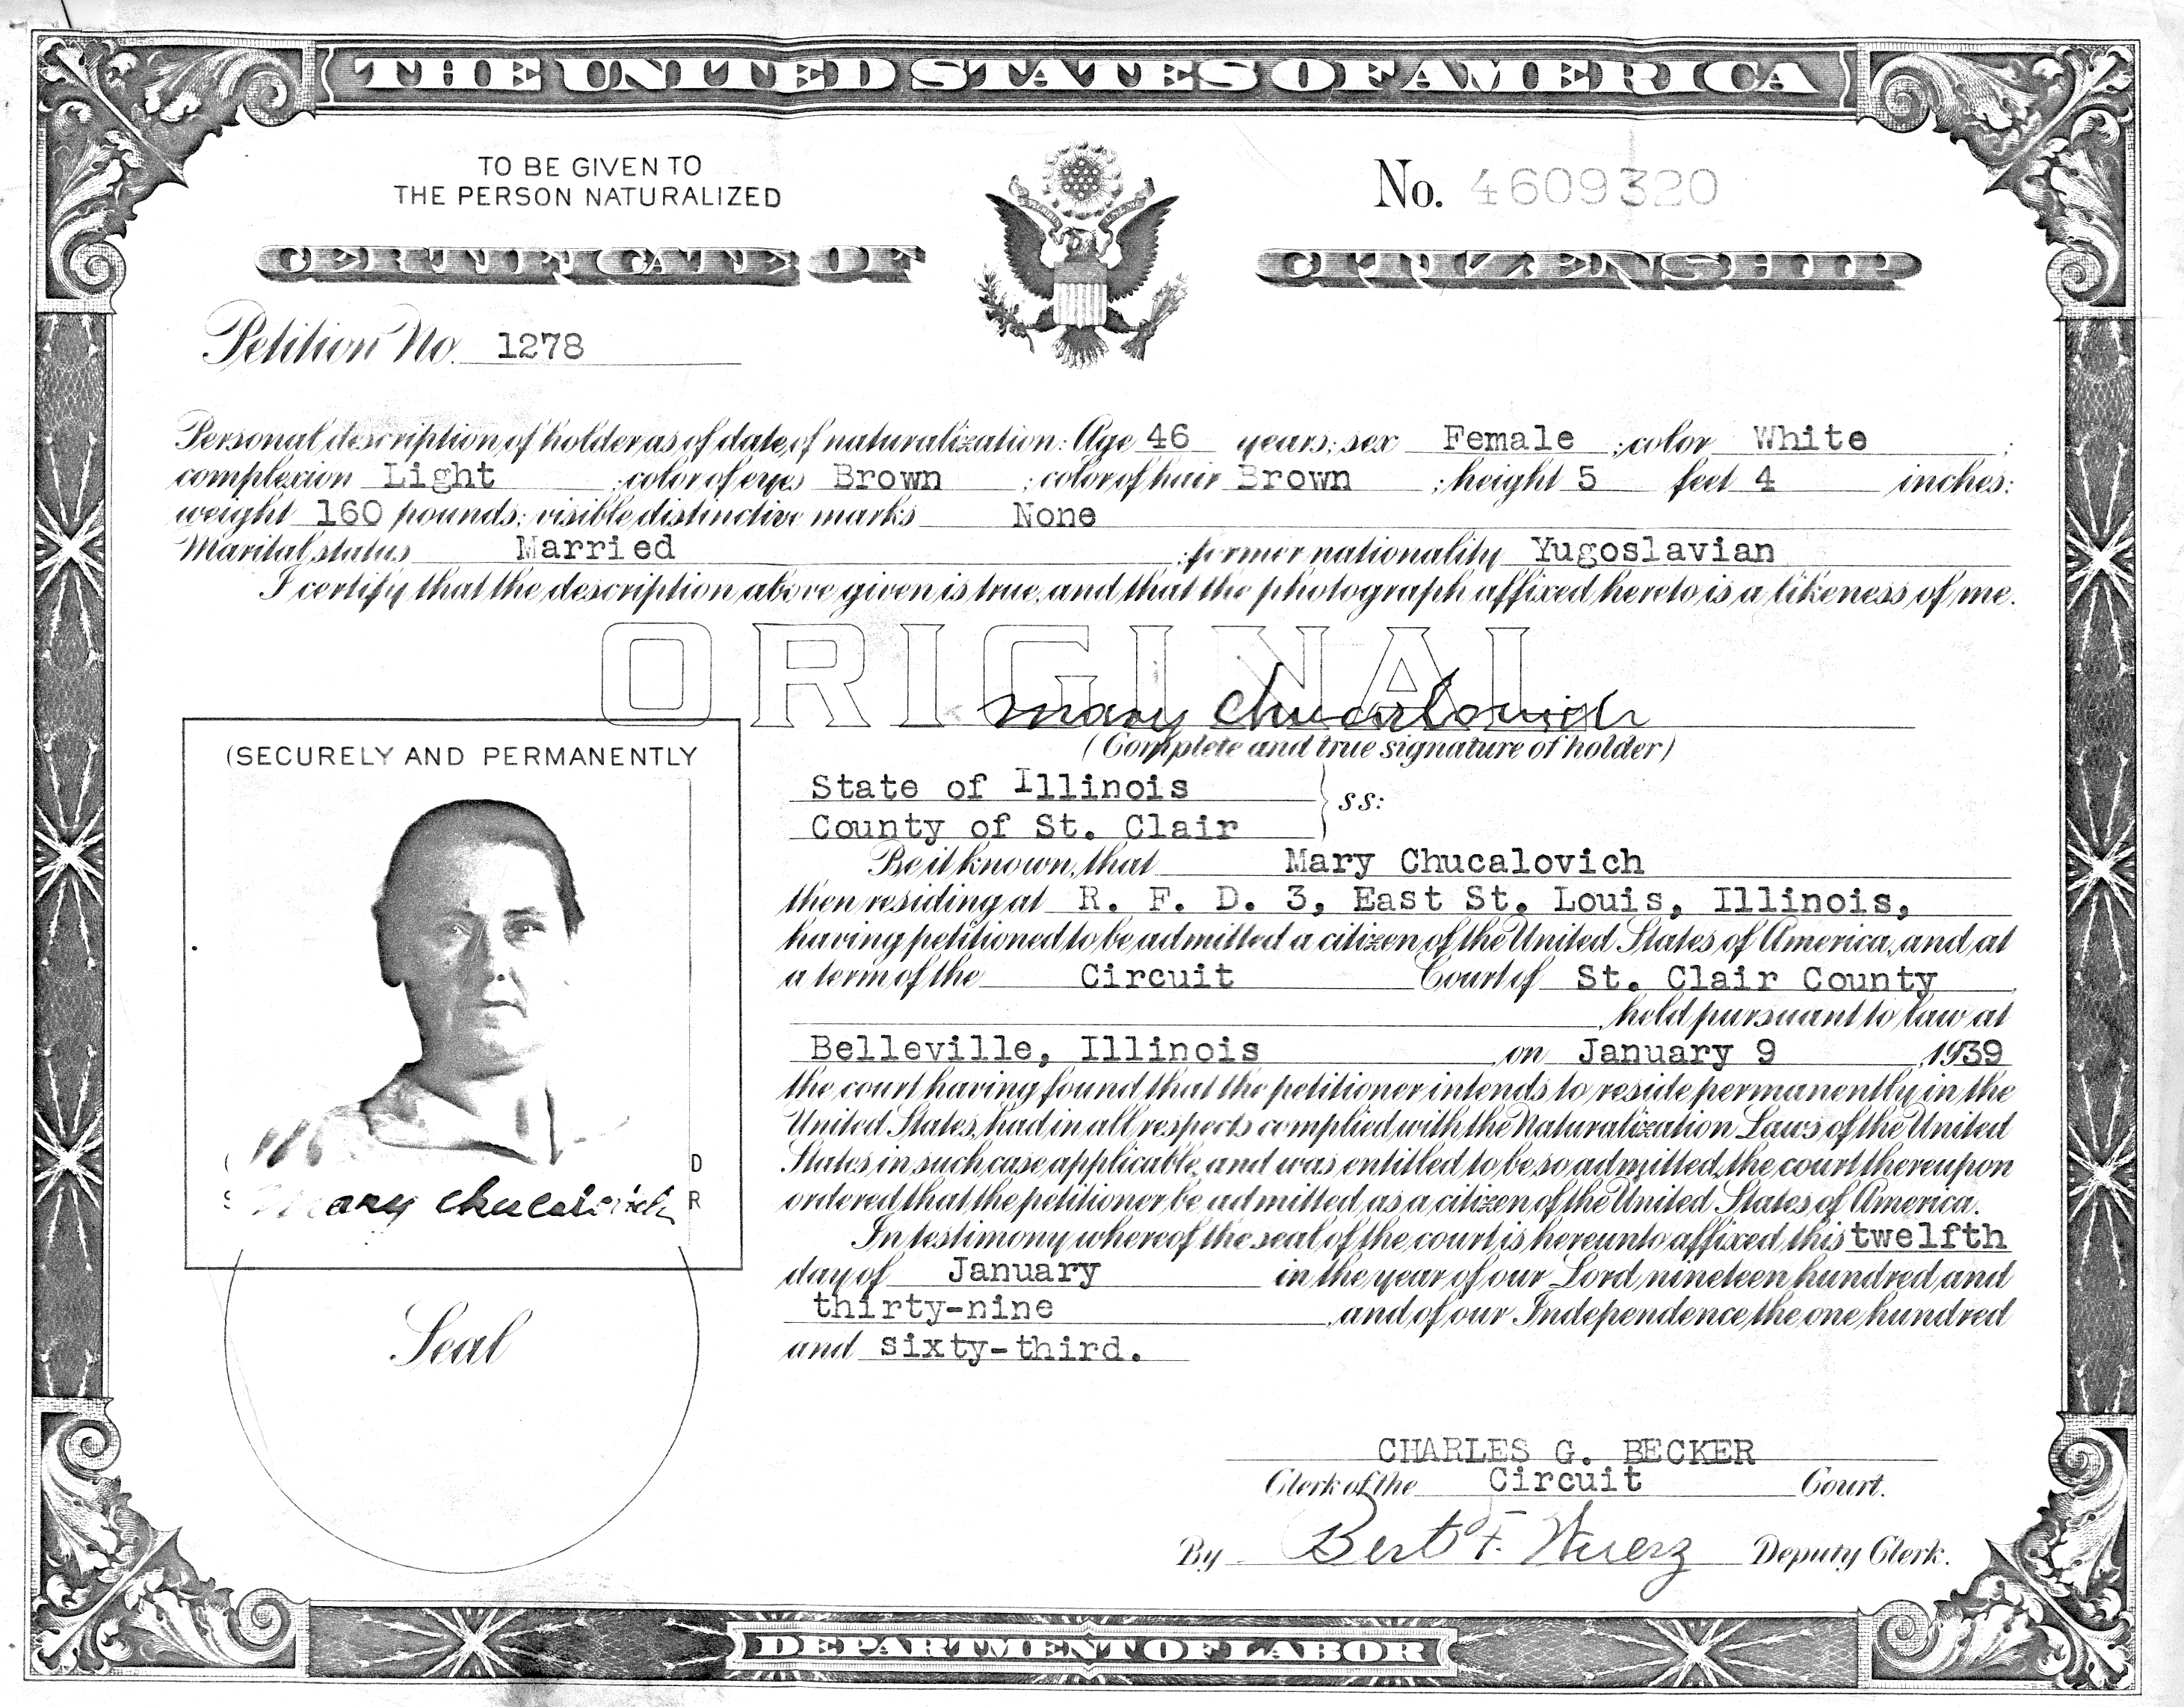 Naturalization mowryjournal mary gavelda immigrated from poland in 1908 and then married simon chucalovich in 1910 xflitez Choice Image